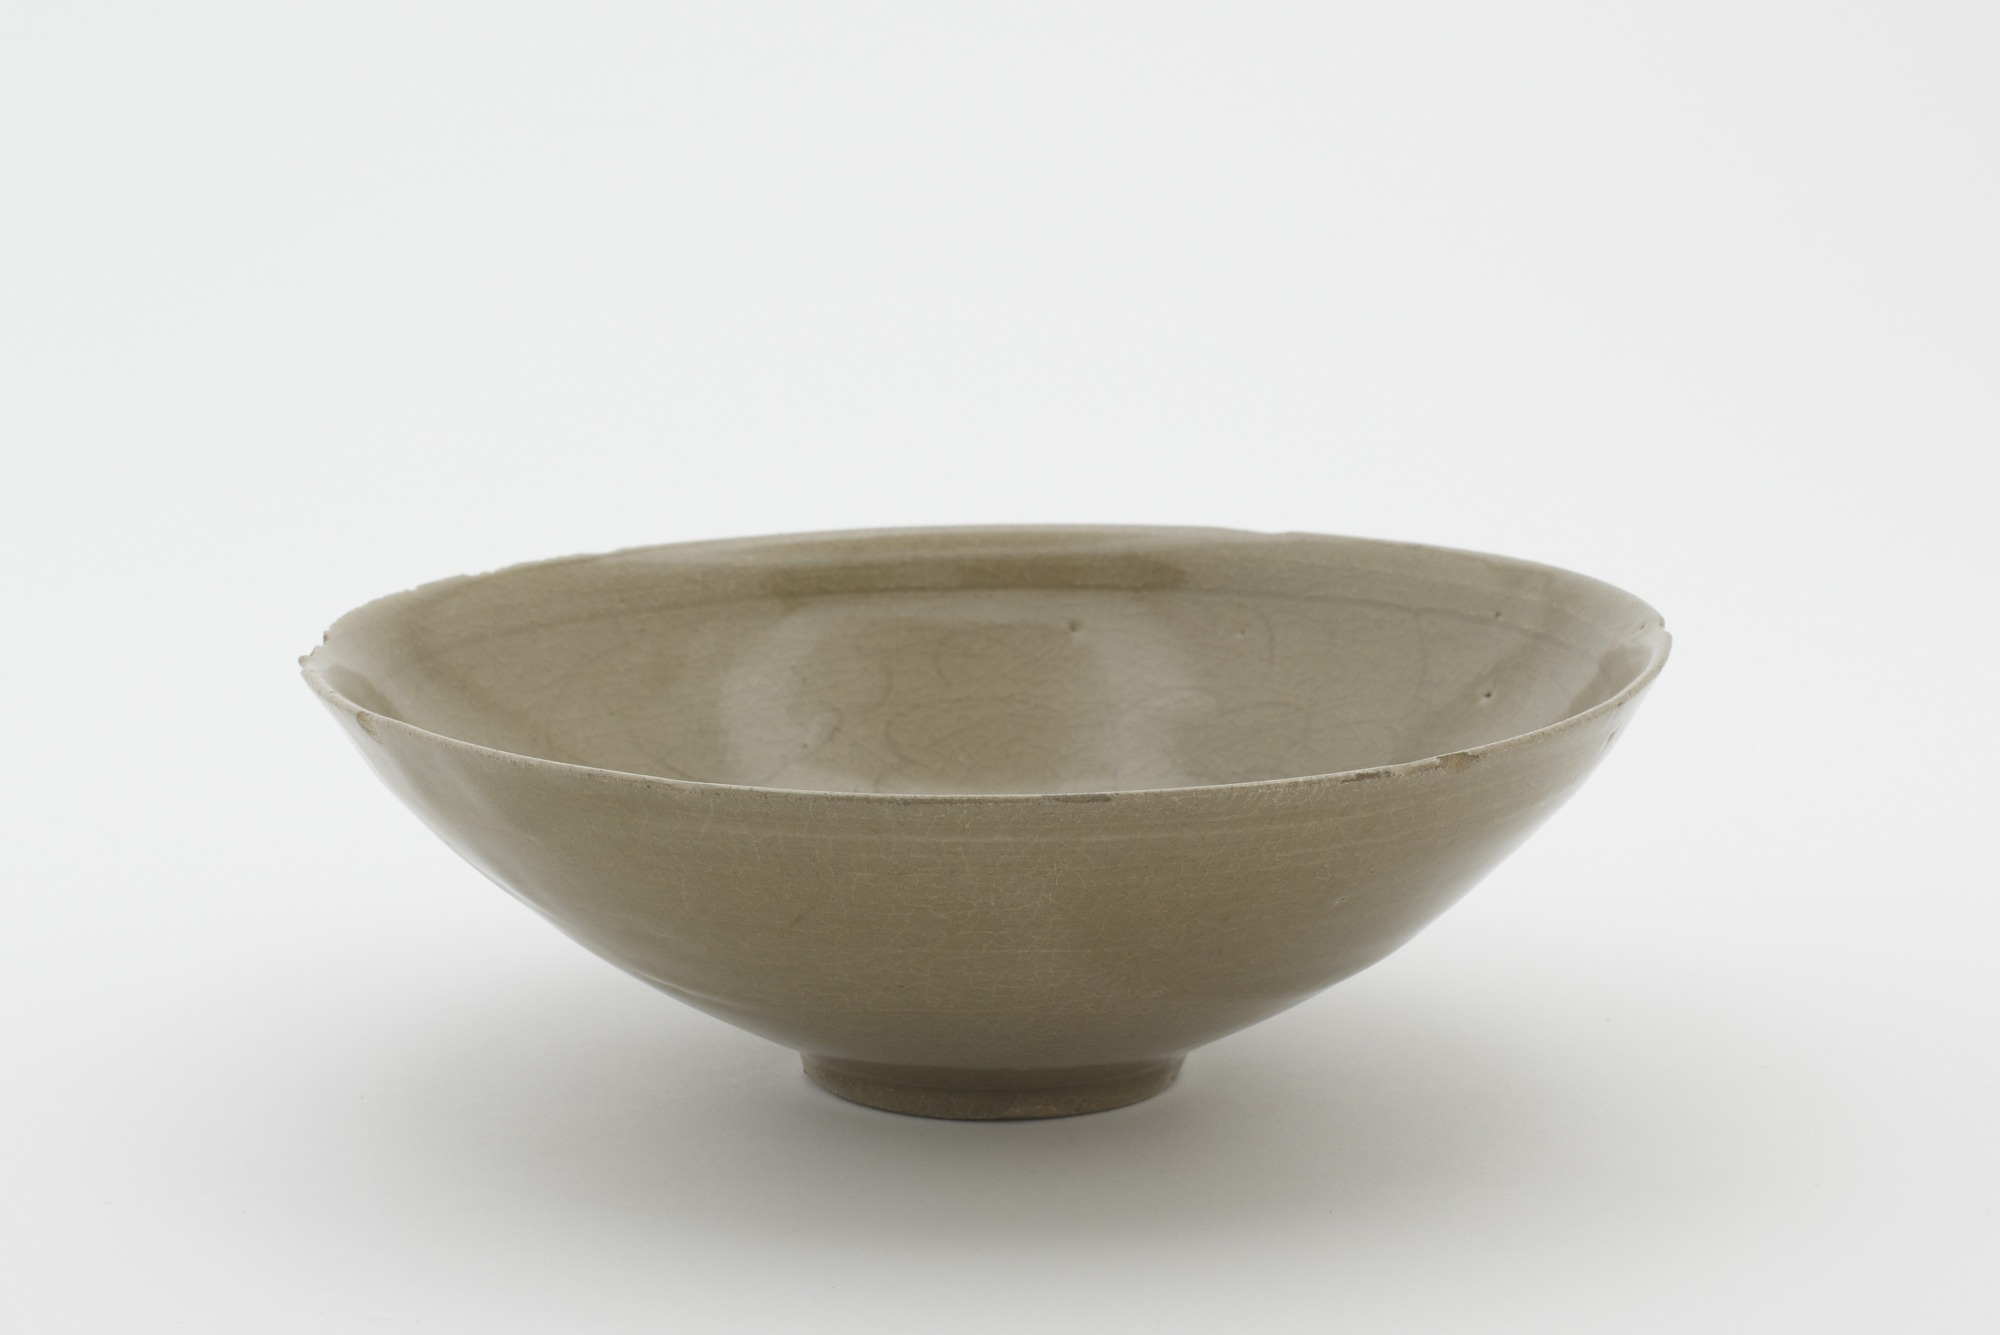 Bowl with incised decoration, profile